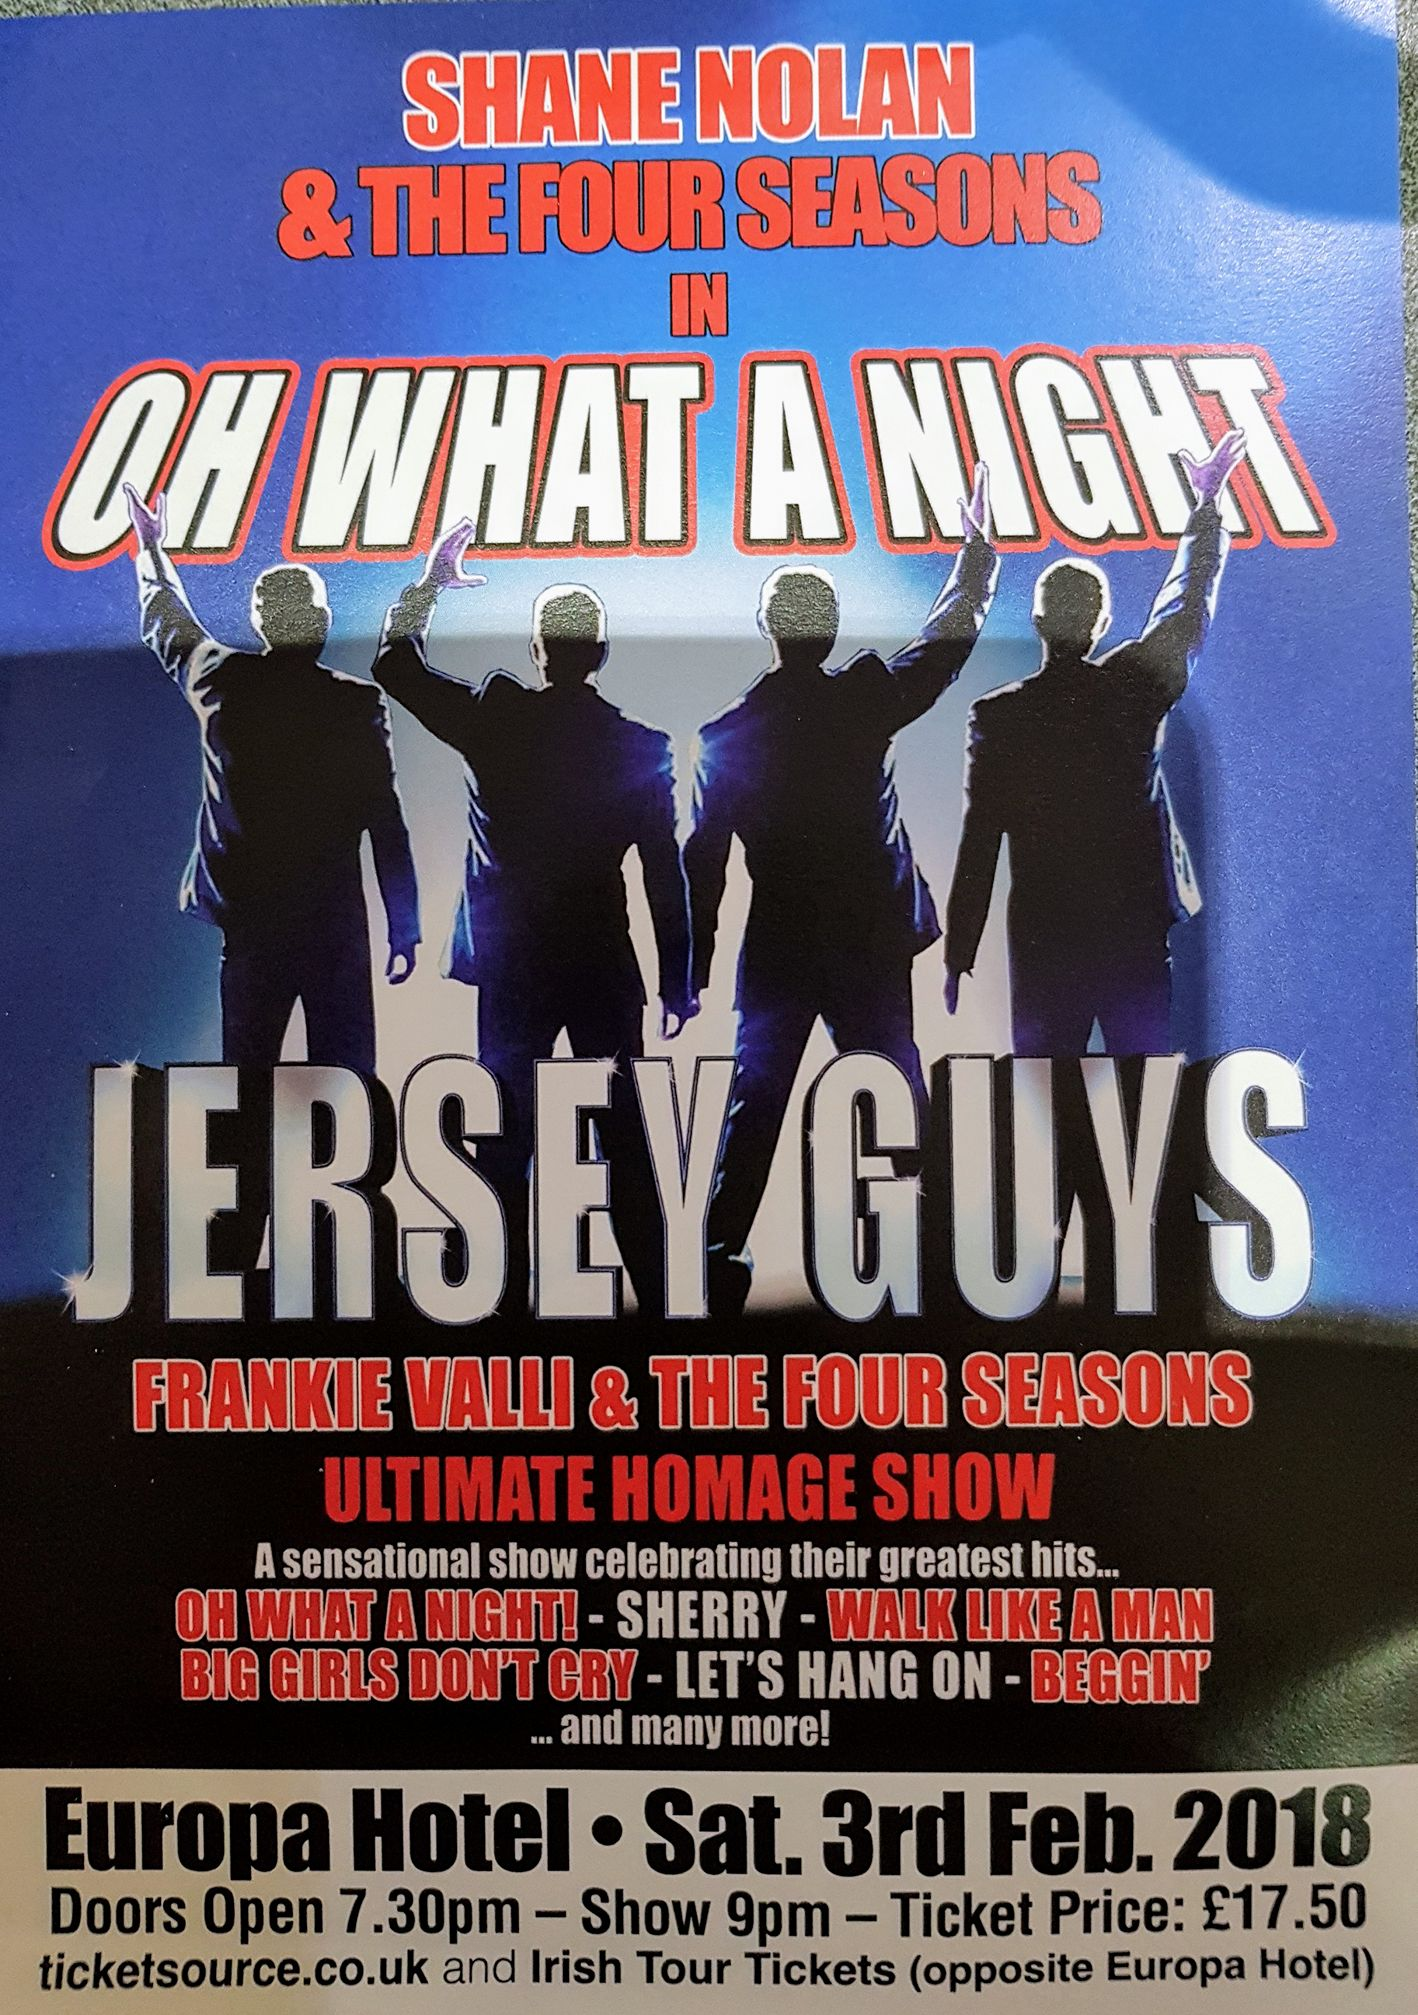 Jersey Guys Oh What A Night at Europa Hotel event tickets